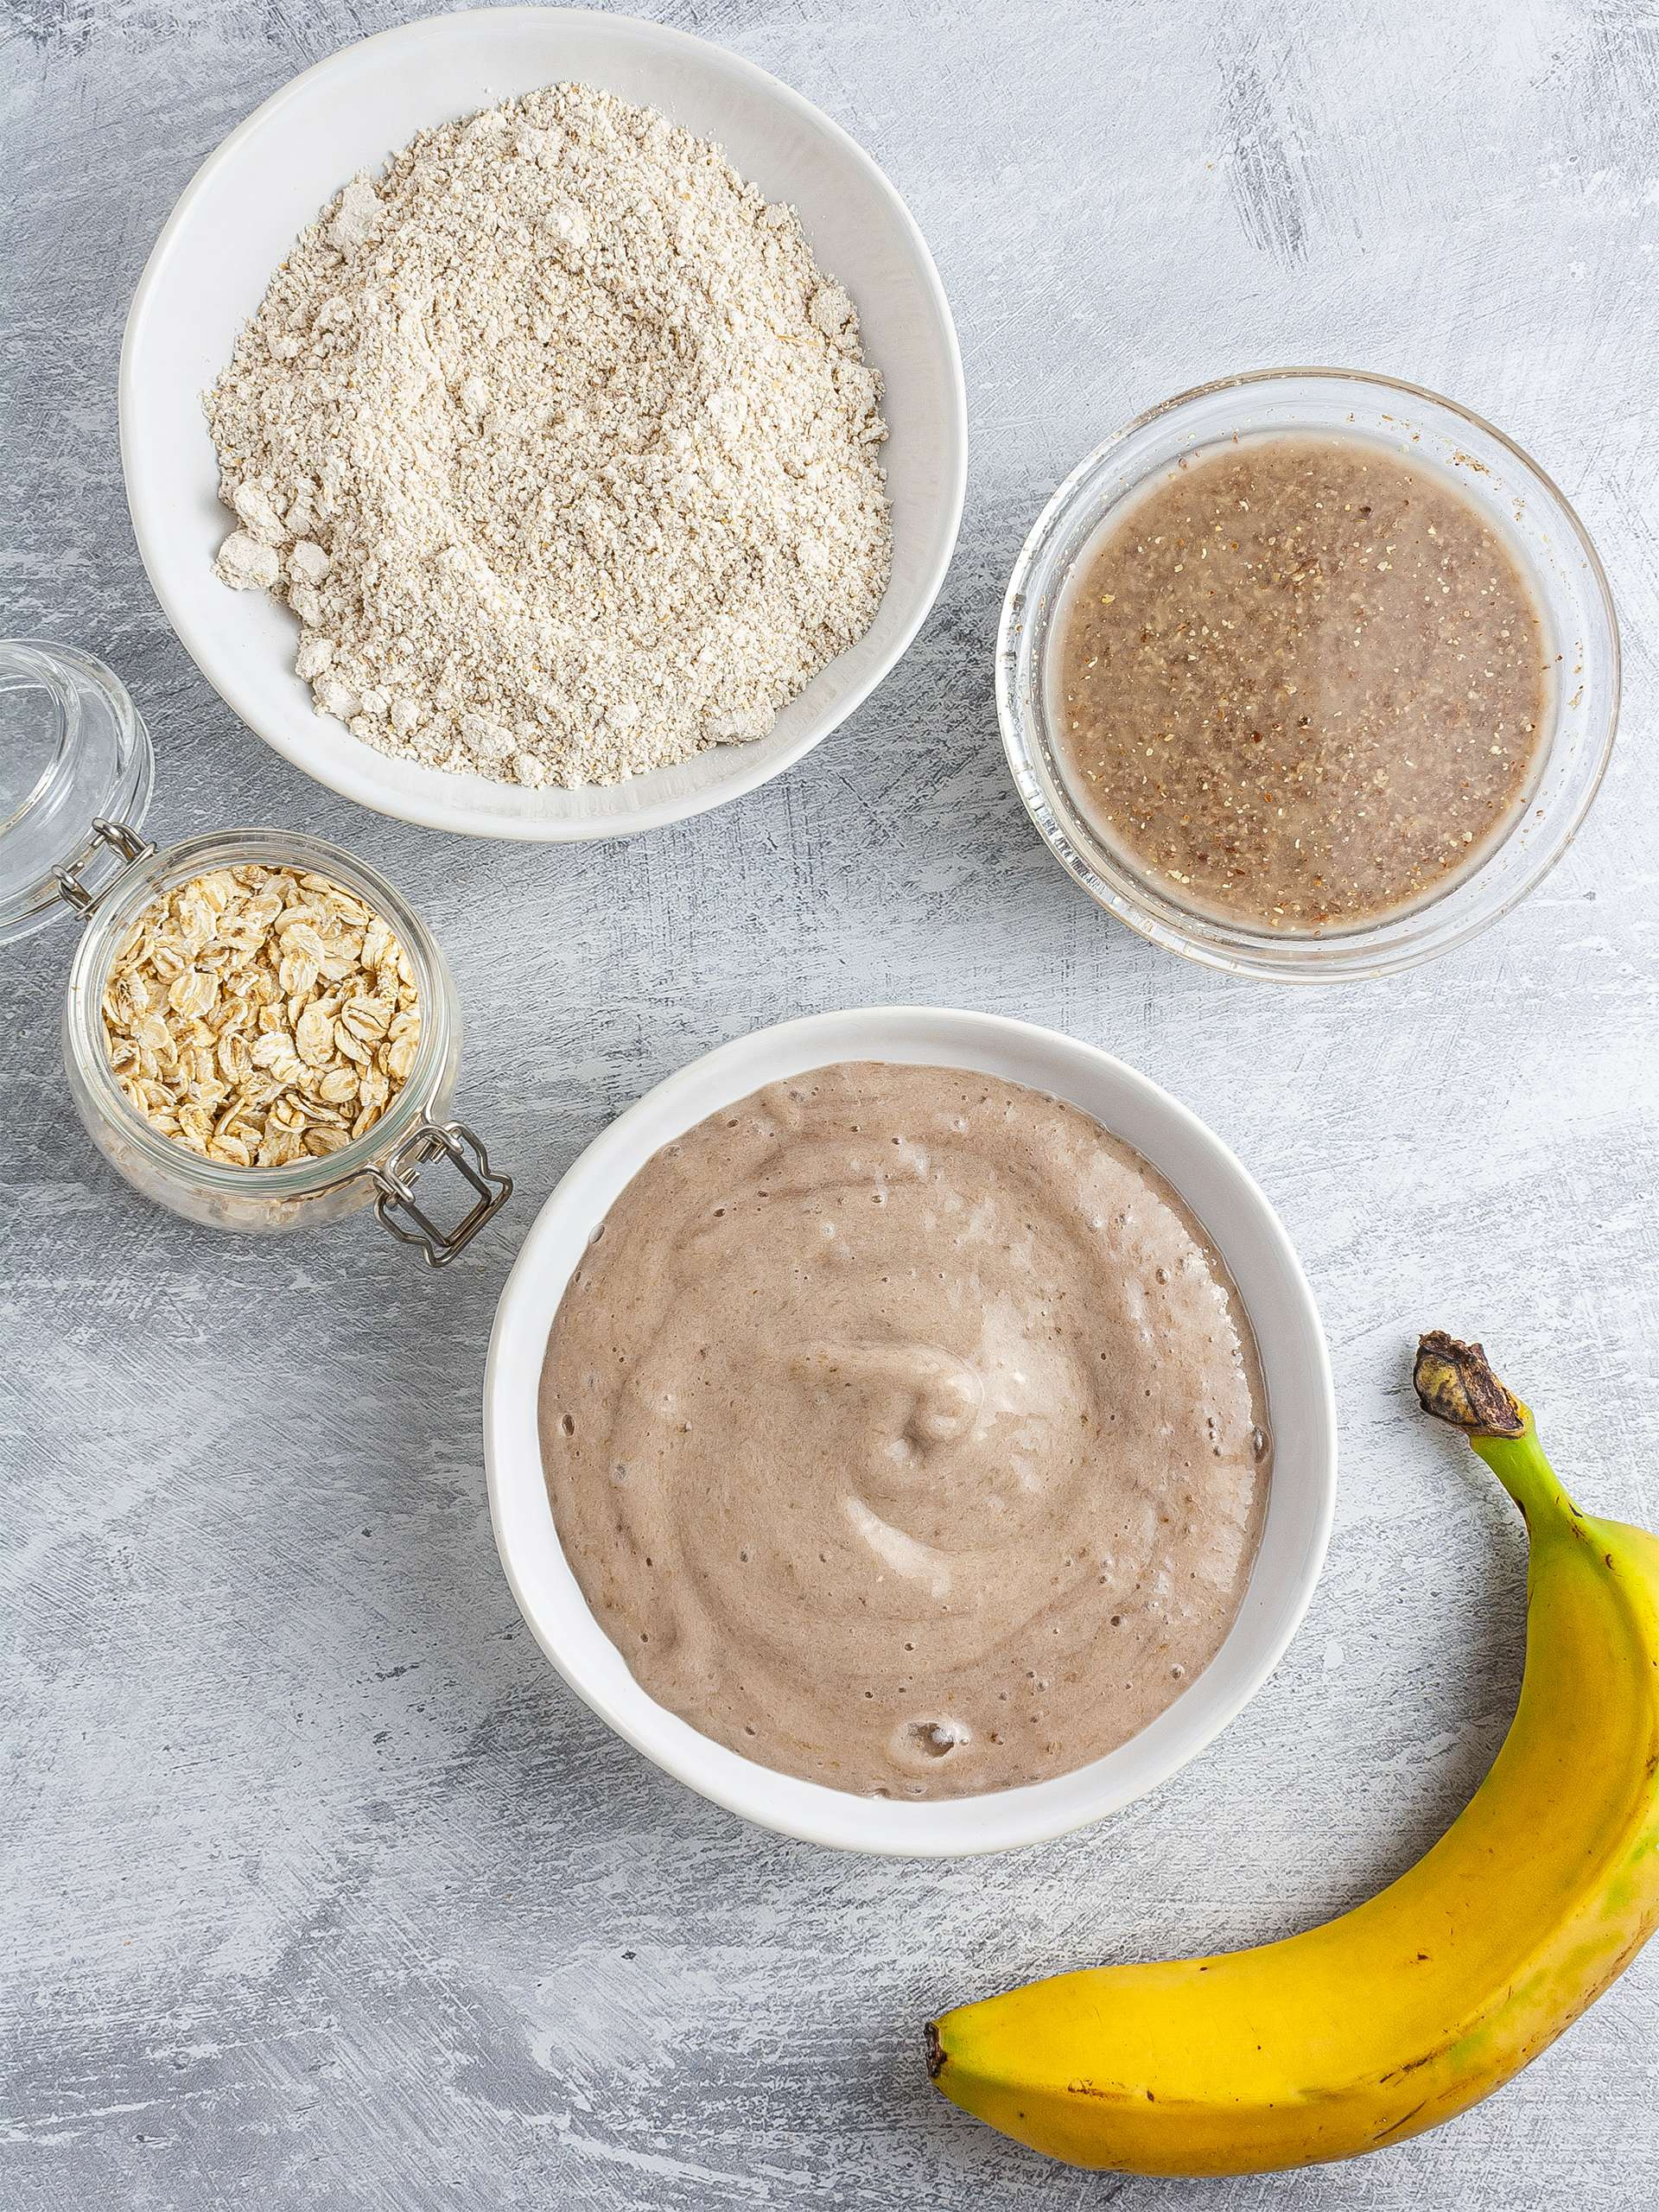 Oat flour, mashed bananas, and flaxegg